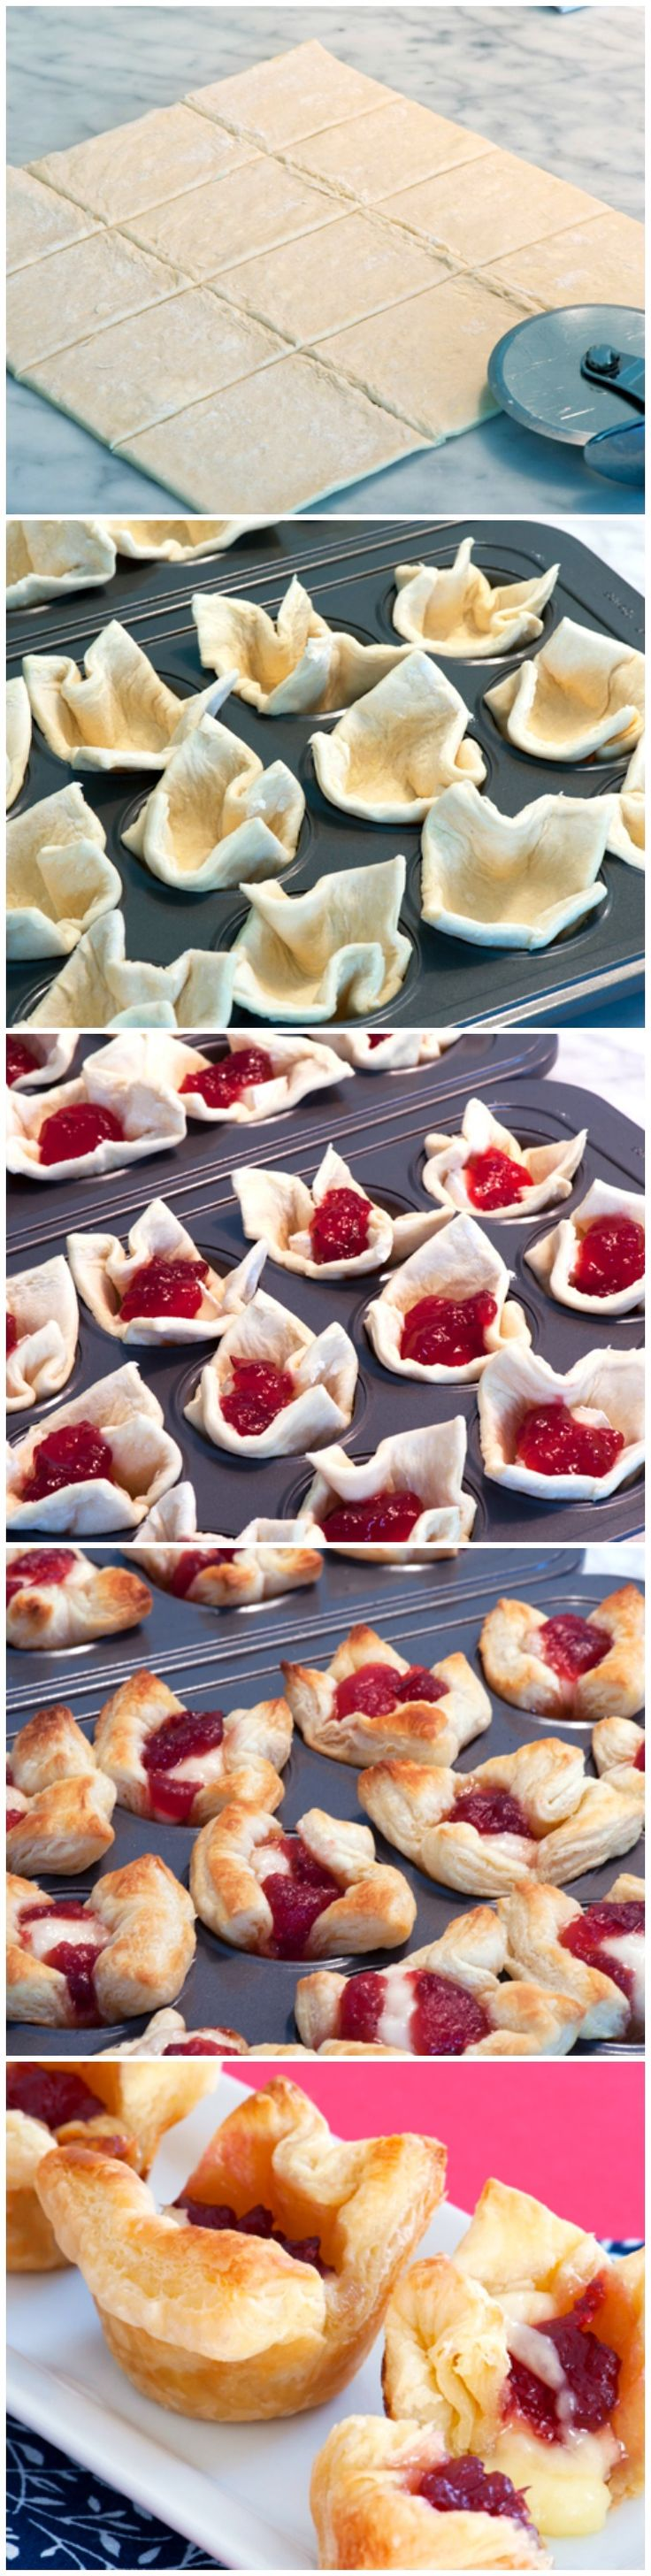 Cranberry Brie Bites #viewingparty